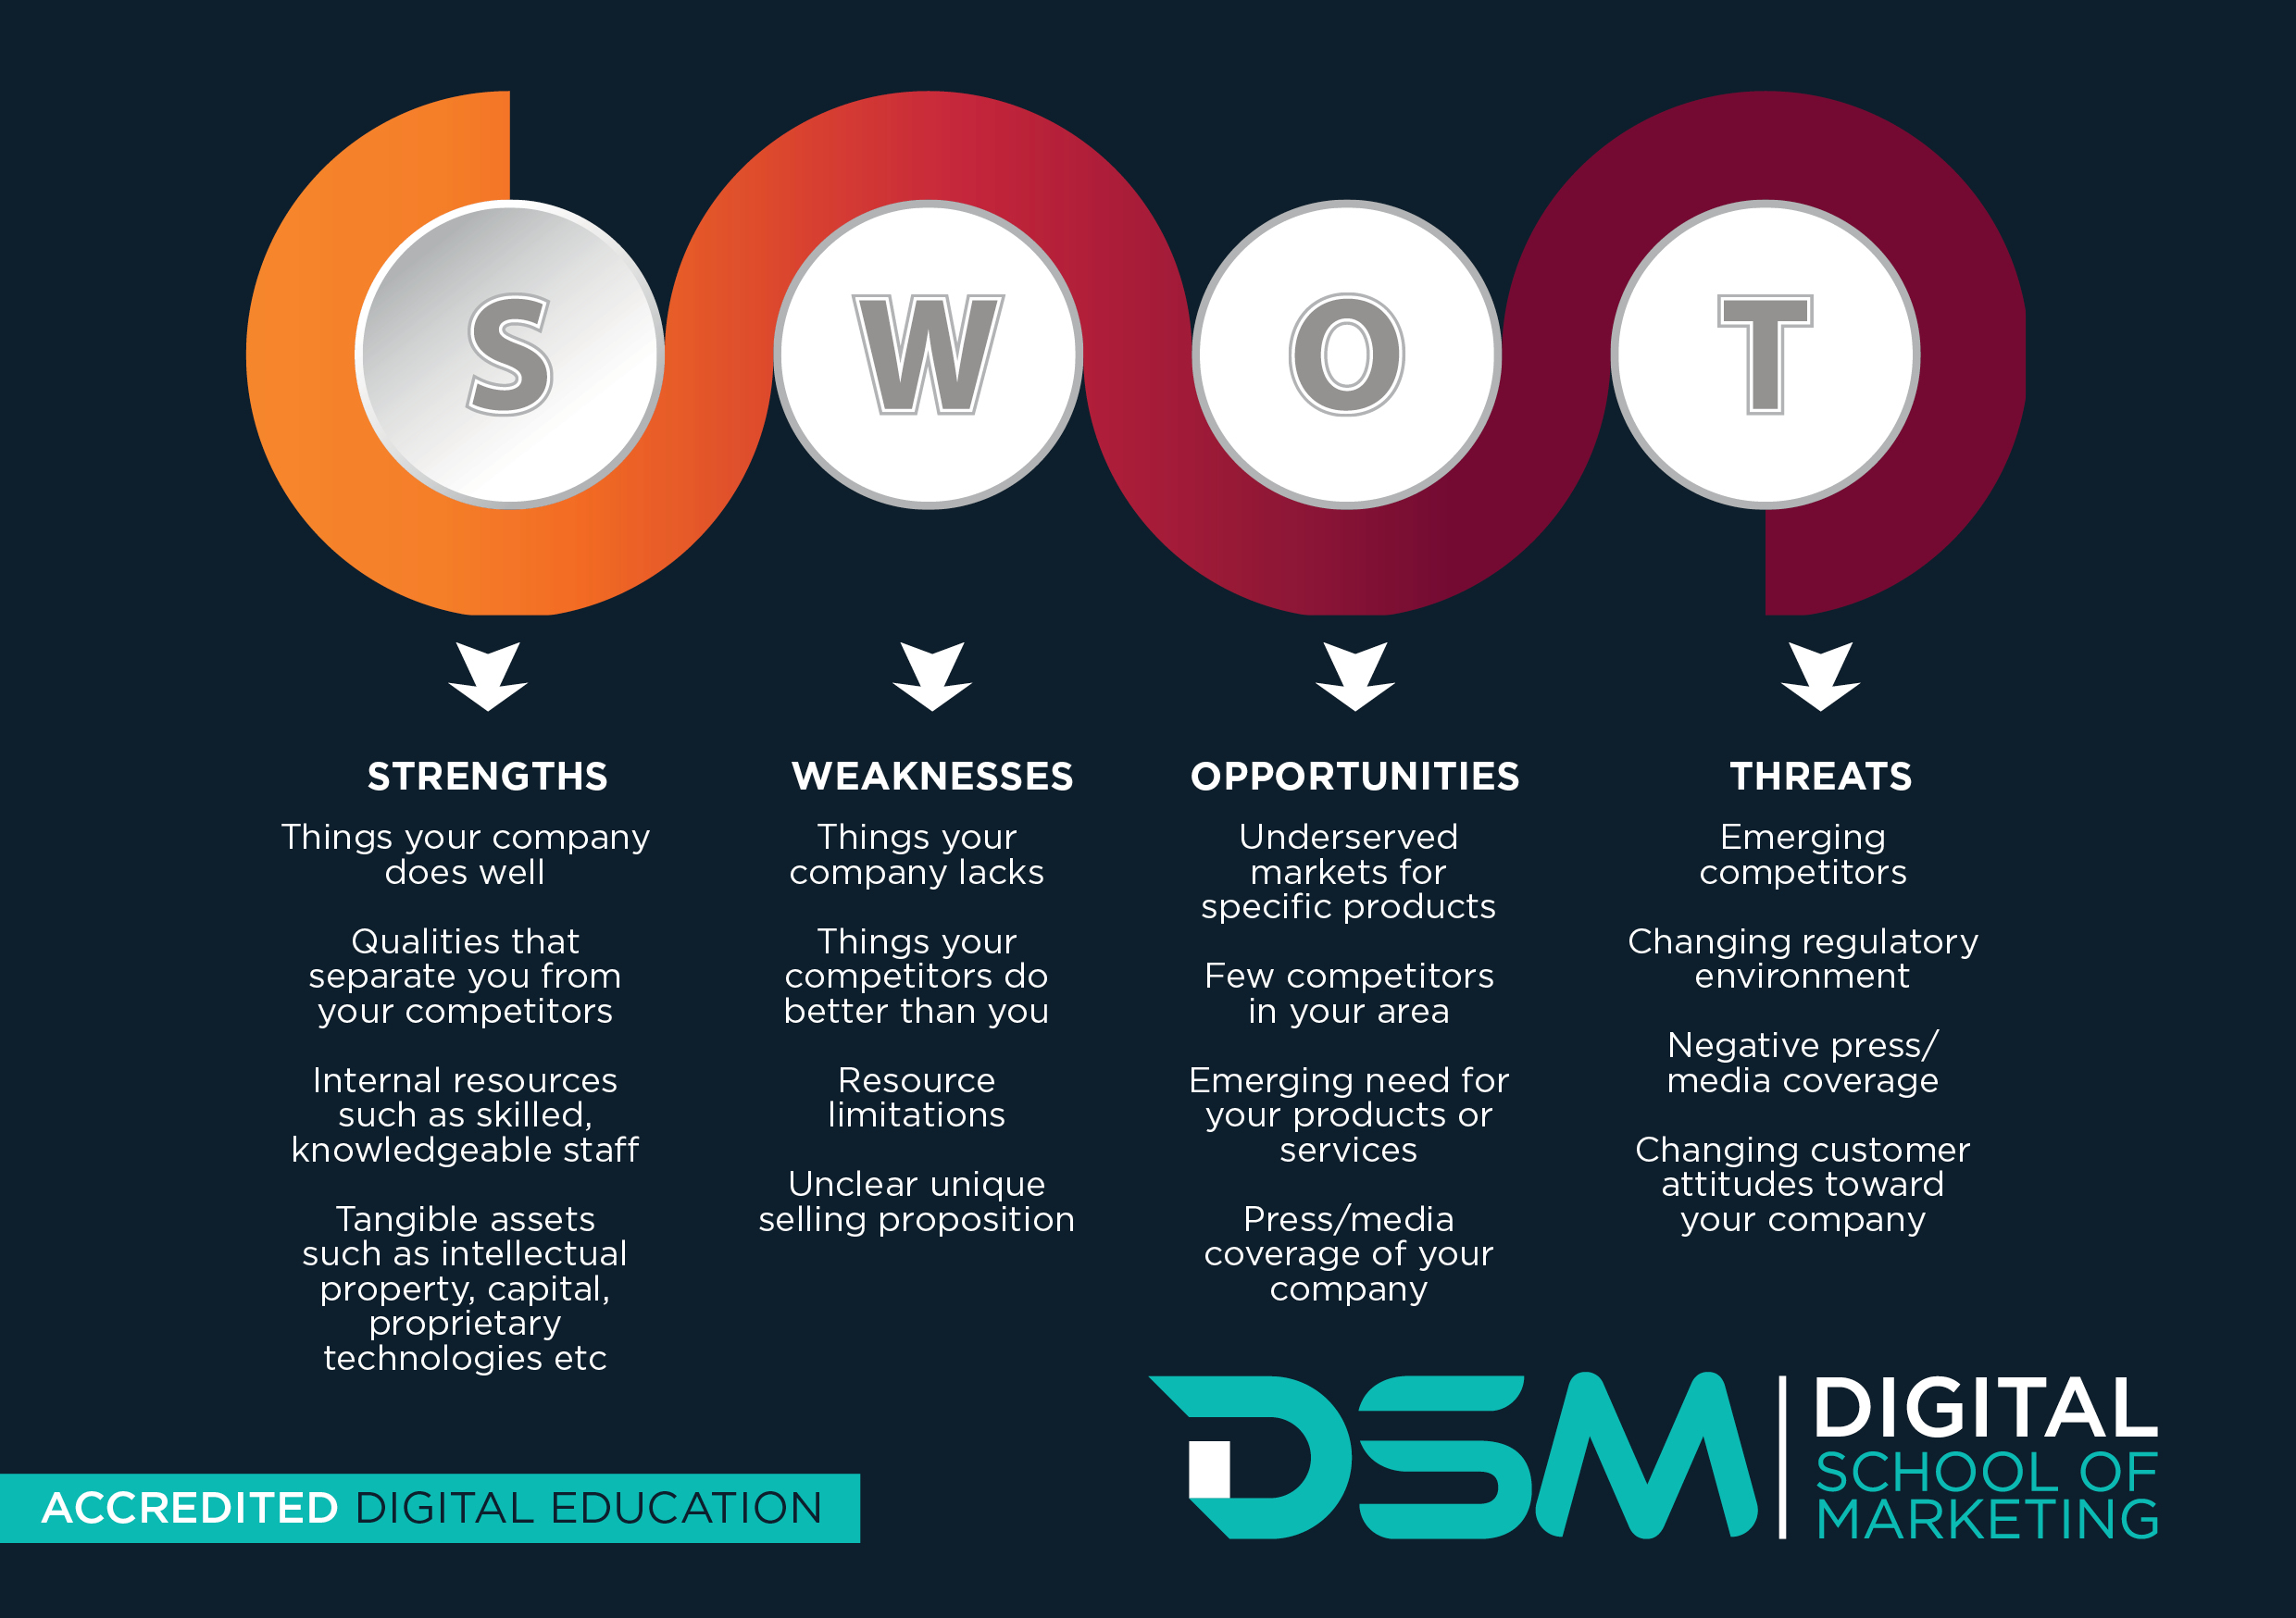 DSM Digital School of Marketing- SWOT analysis